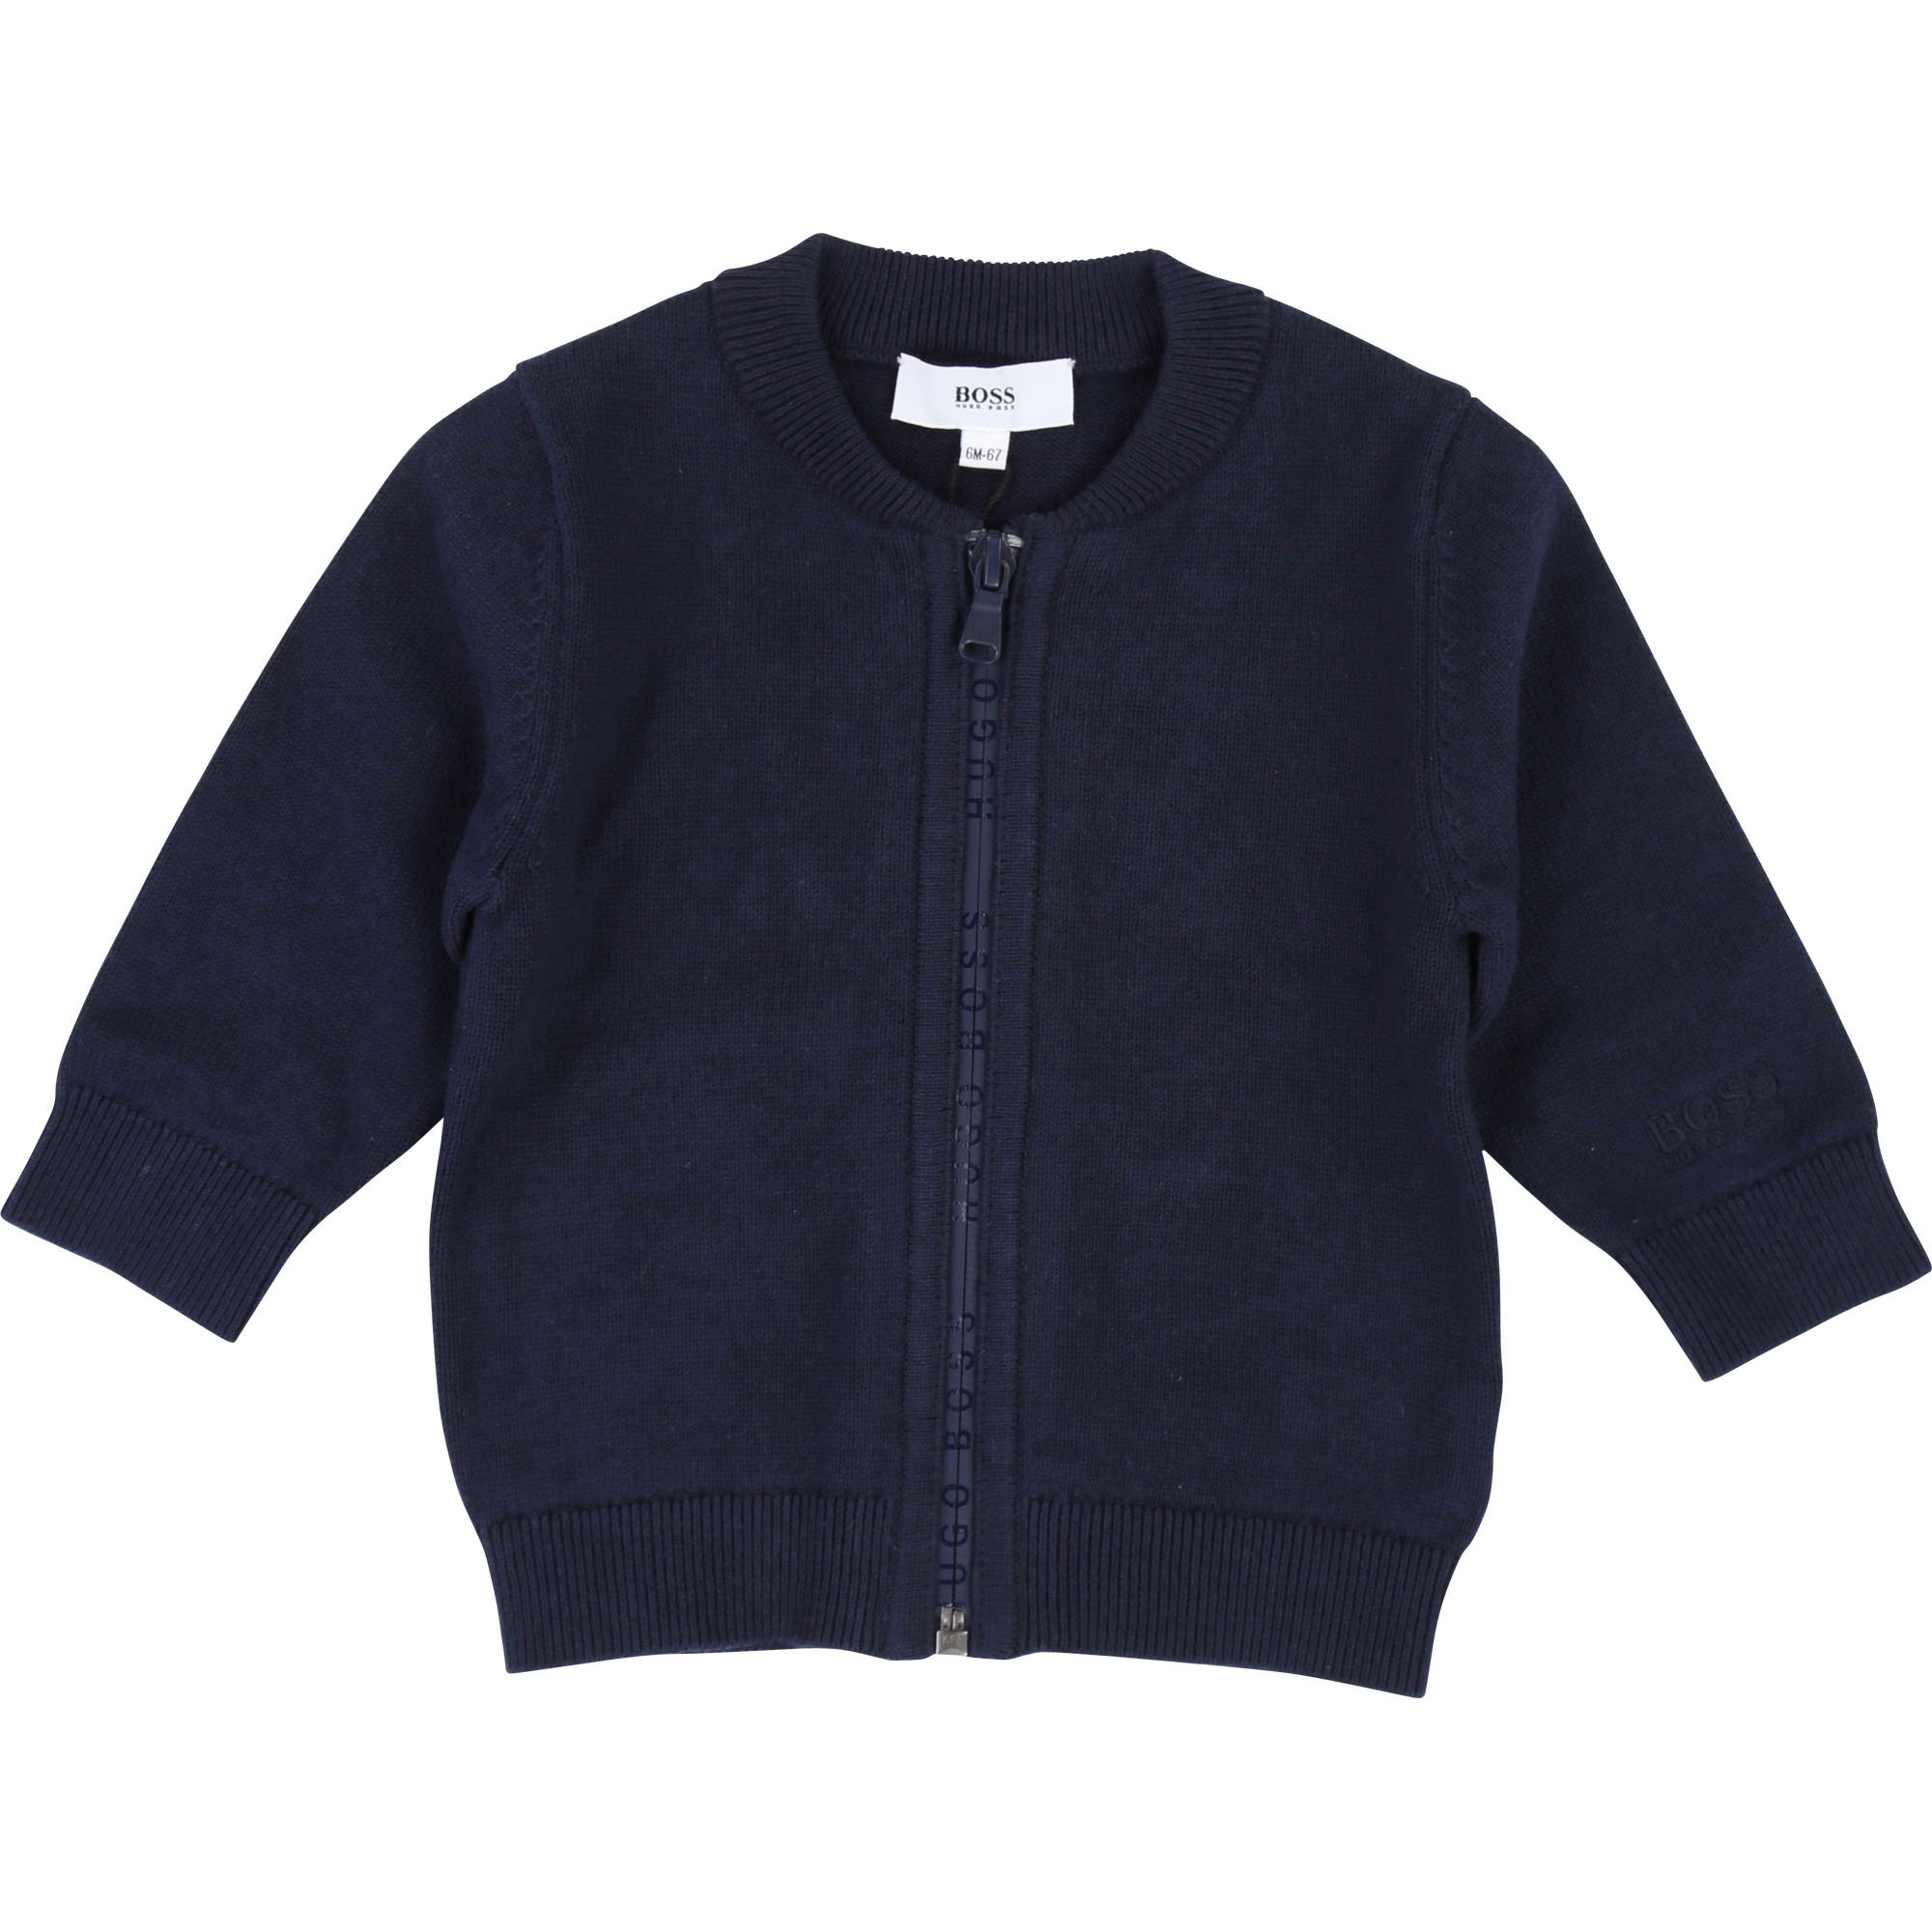 KNITTED CARDIGAN BOSS for BOY